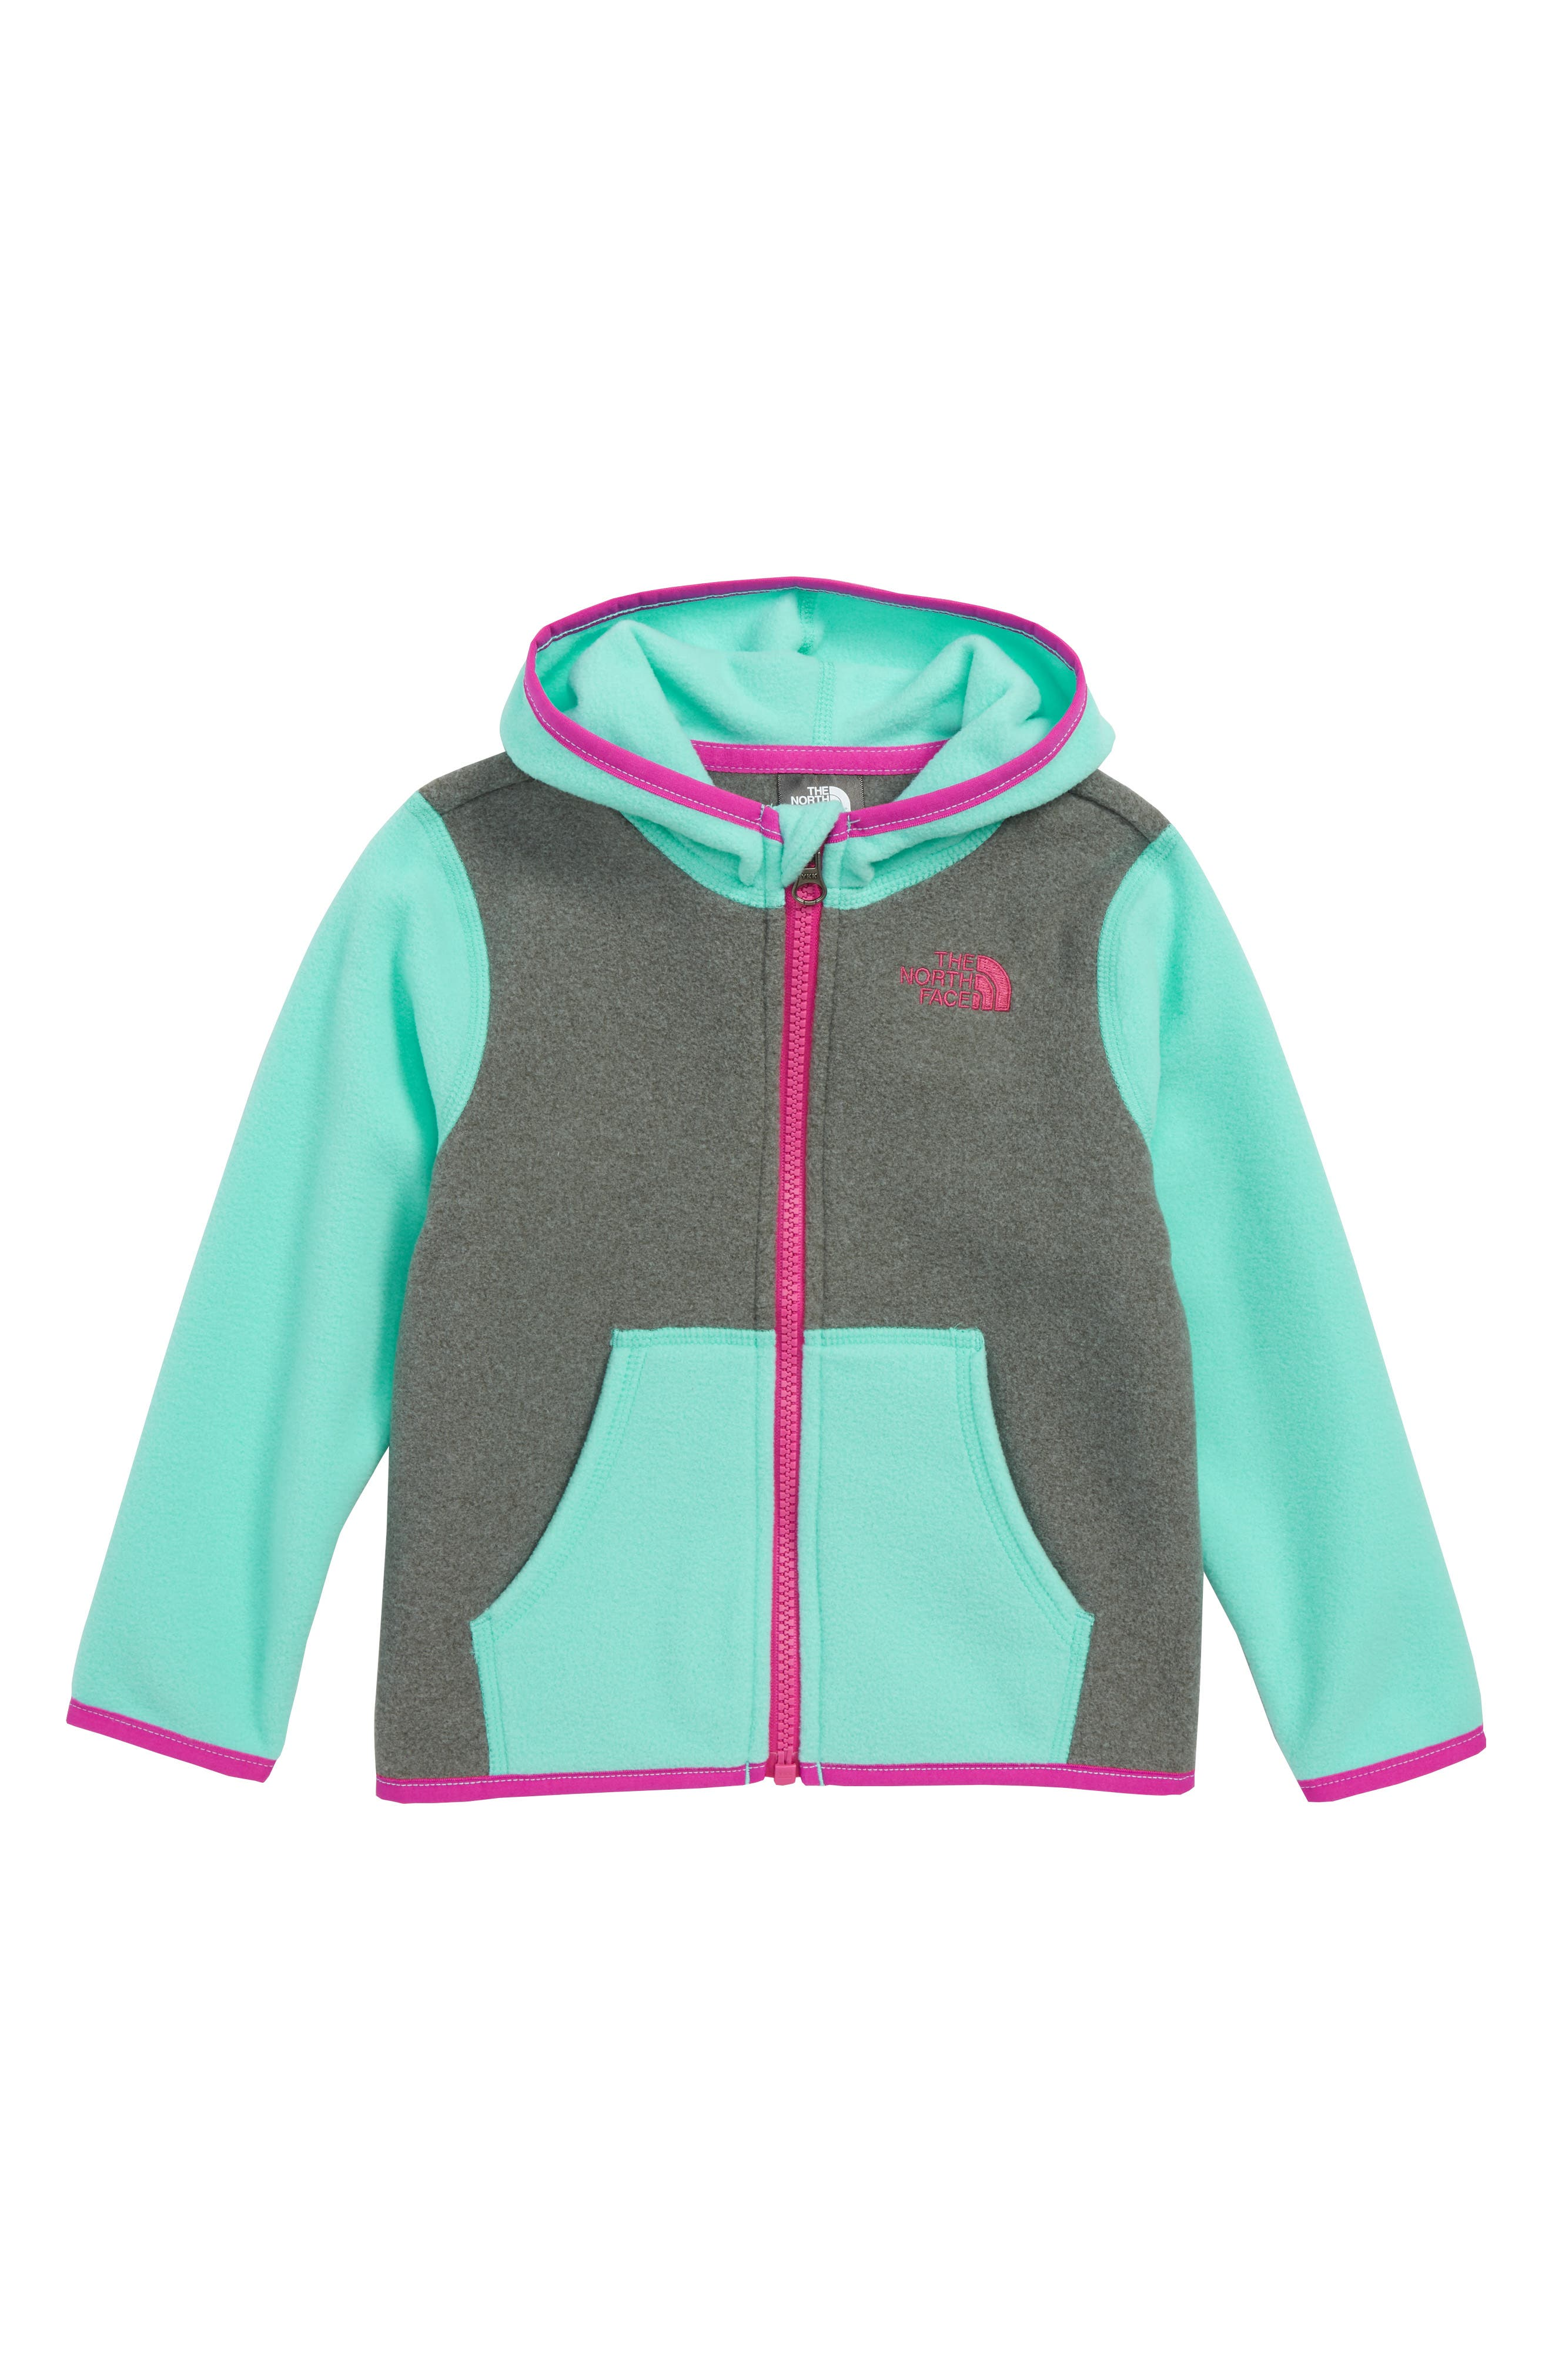 THE NORTH FACE Glacier Full Zip Hoodie, Main, color, 439